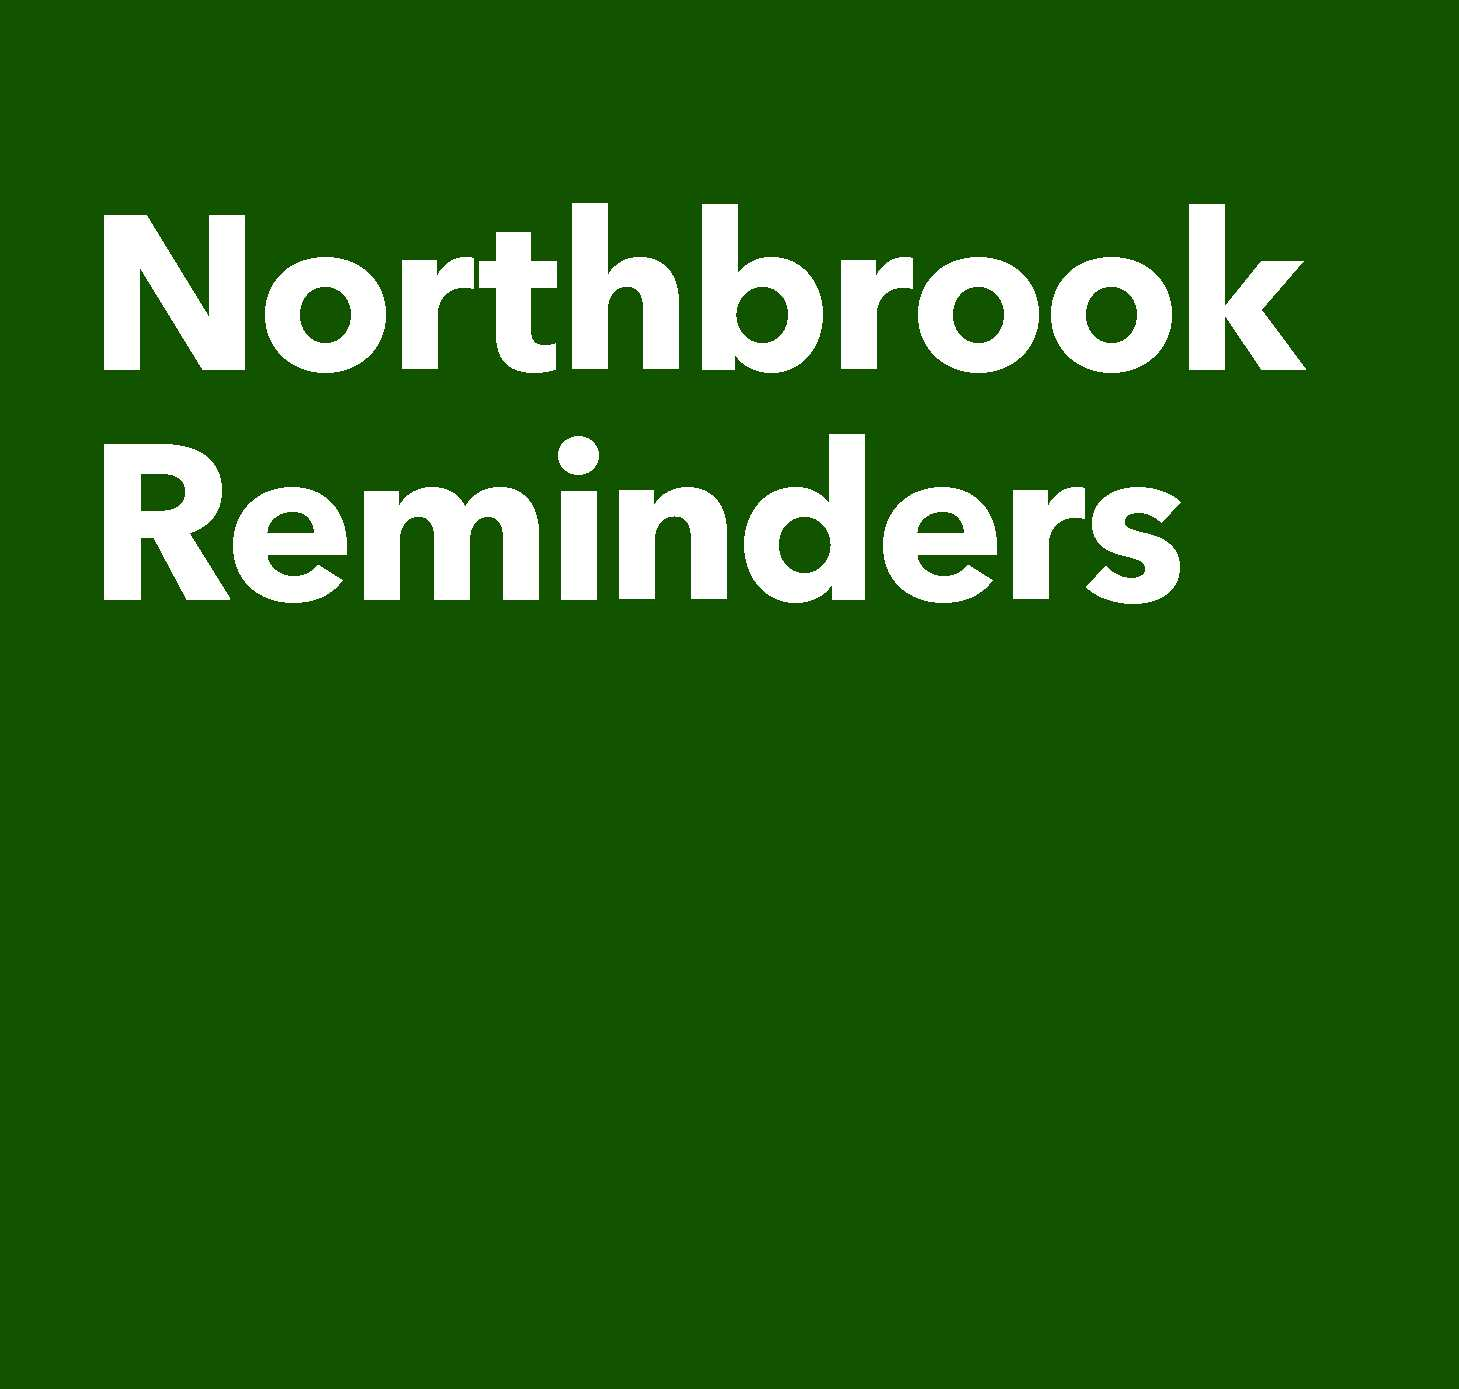 Northbrook Reminders